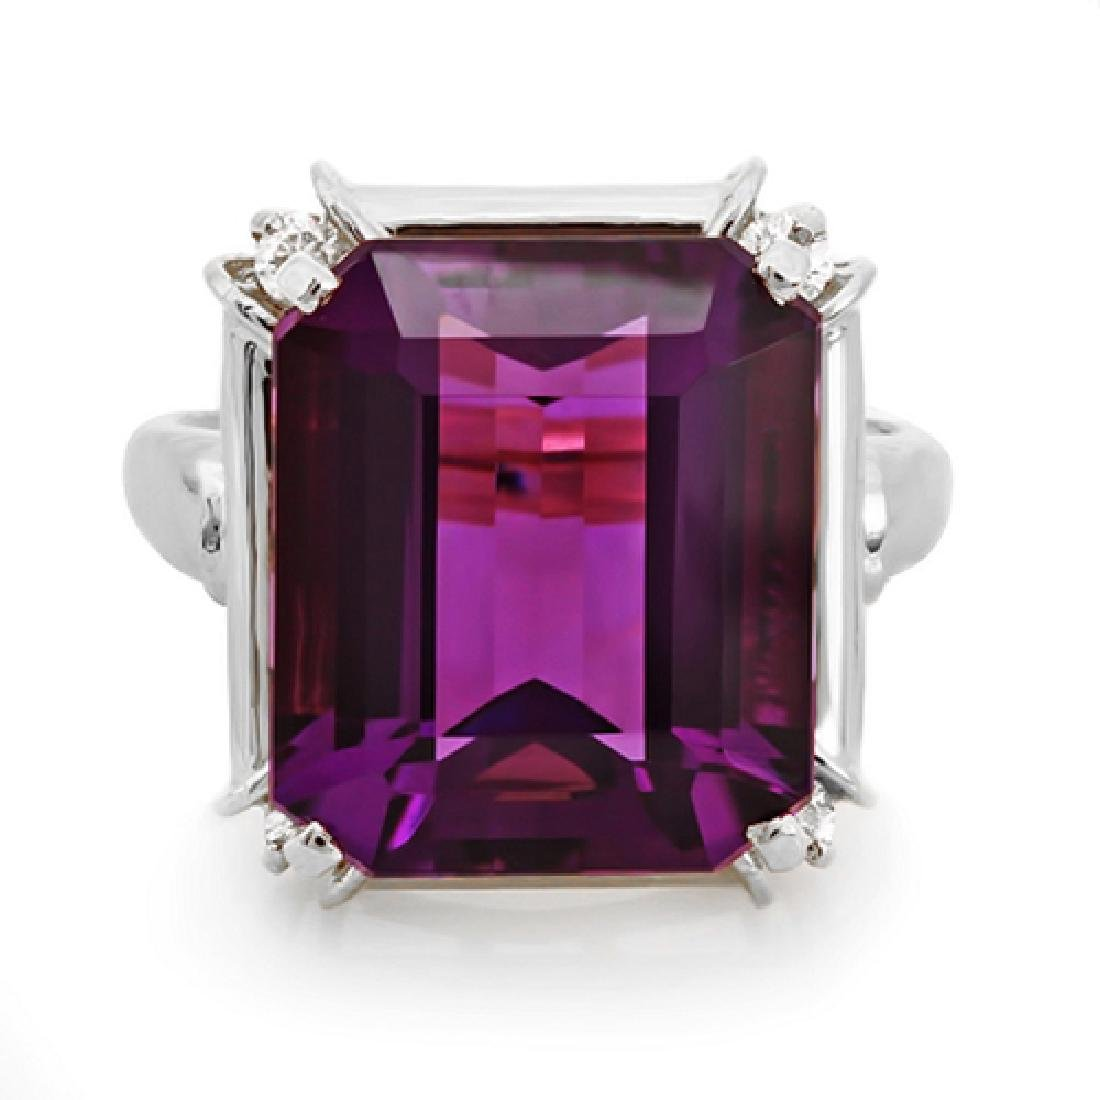 8.65 Carat Natural Amethyst 18K Solid White Gold